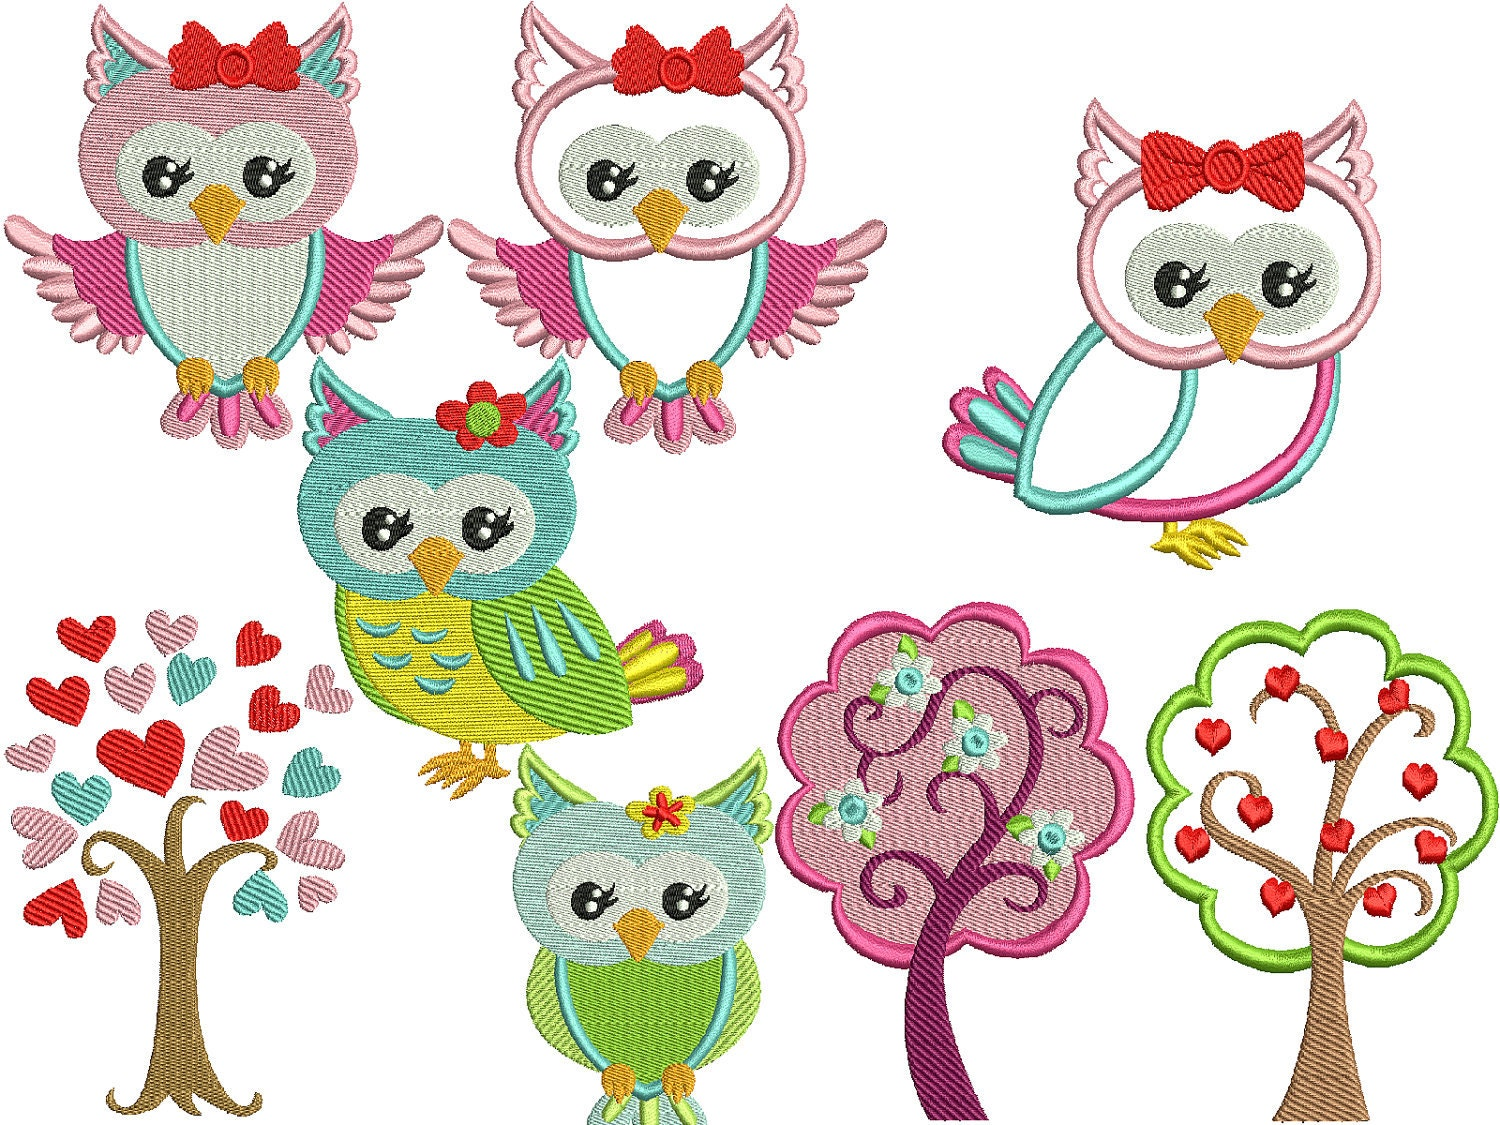 Instant Download Machine Embroidery Design Cute Owls By